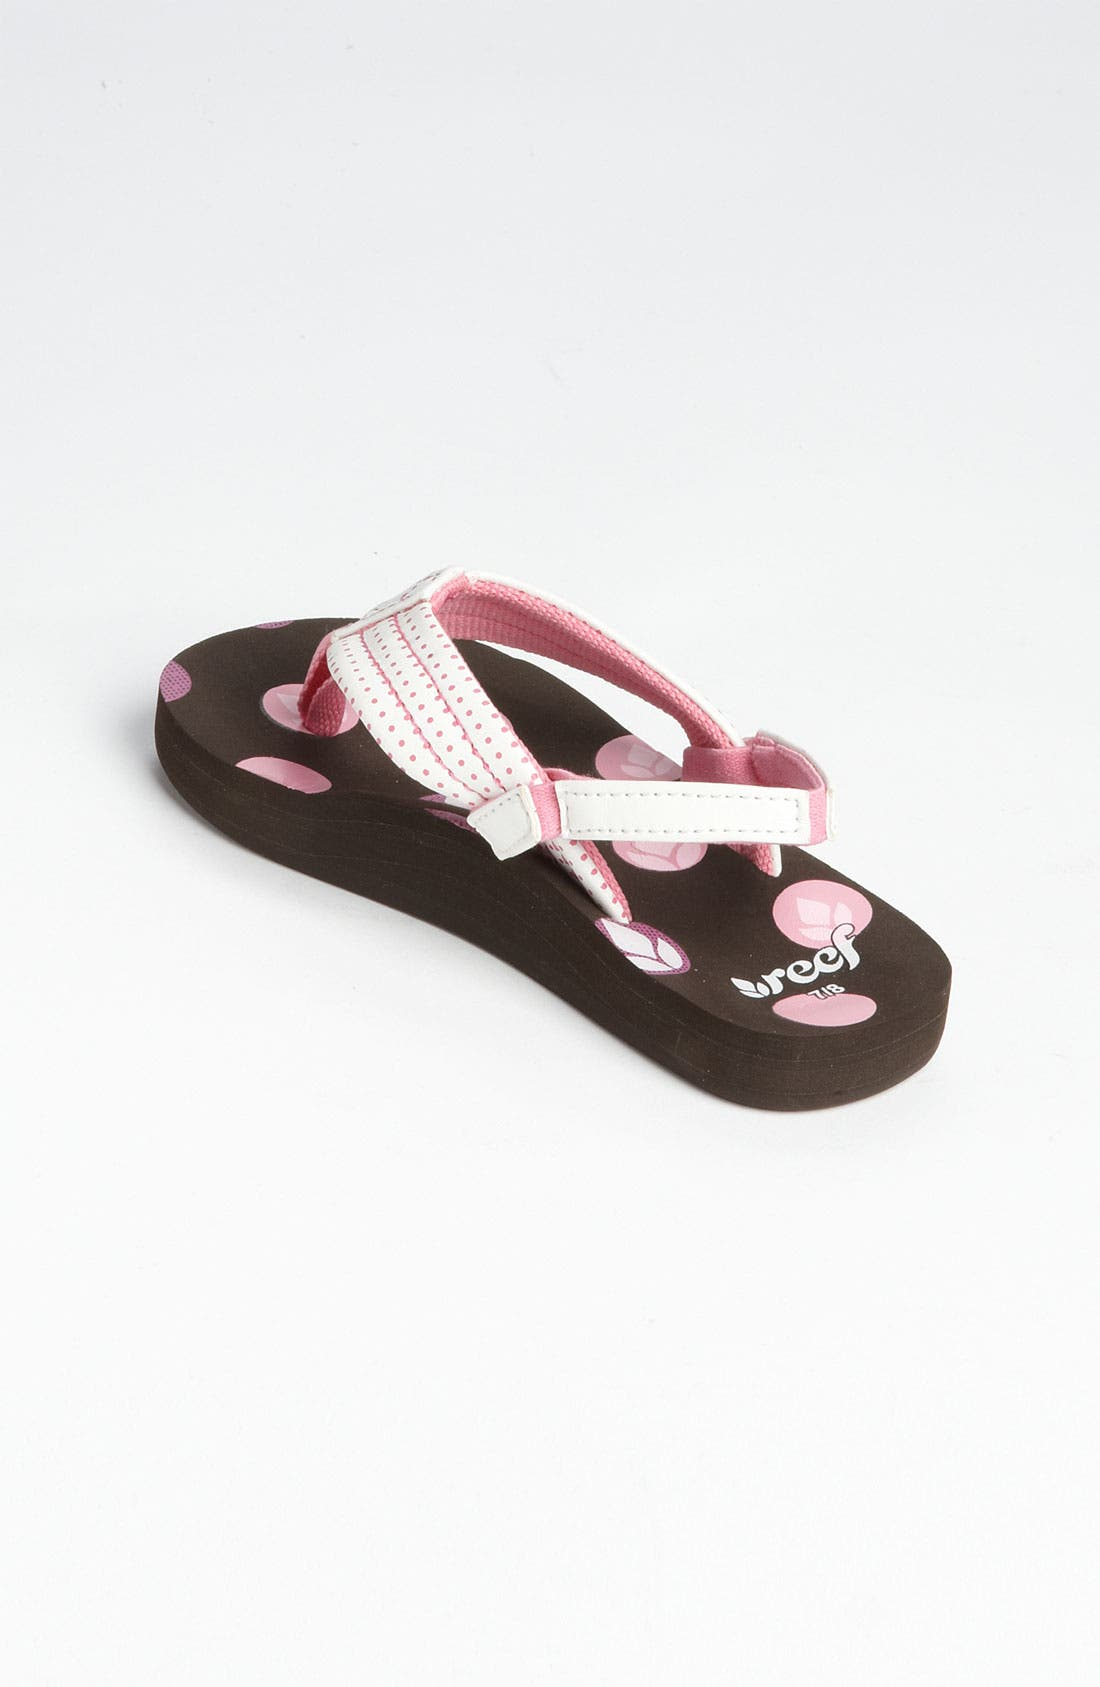 Alternate Image 2  - Reef 'Little Ahi' Sandal (Walker, Toddler, Little Kid & Big Kid)